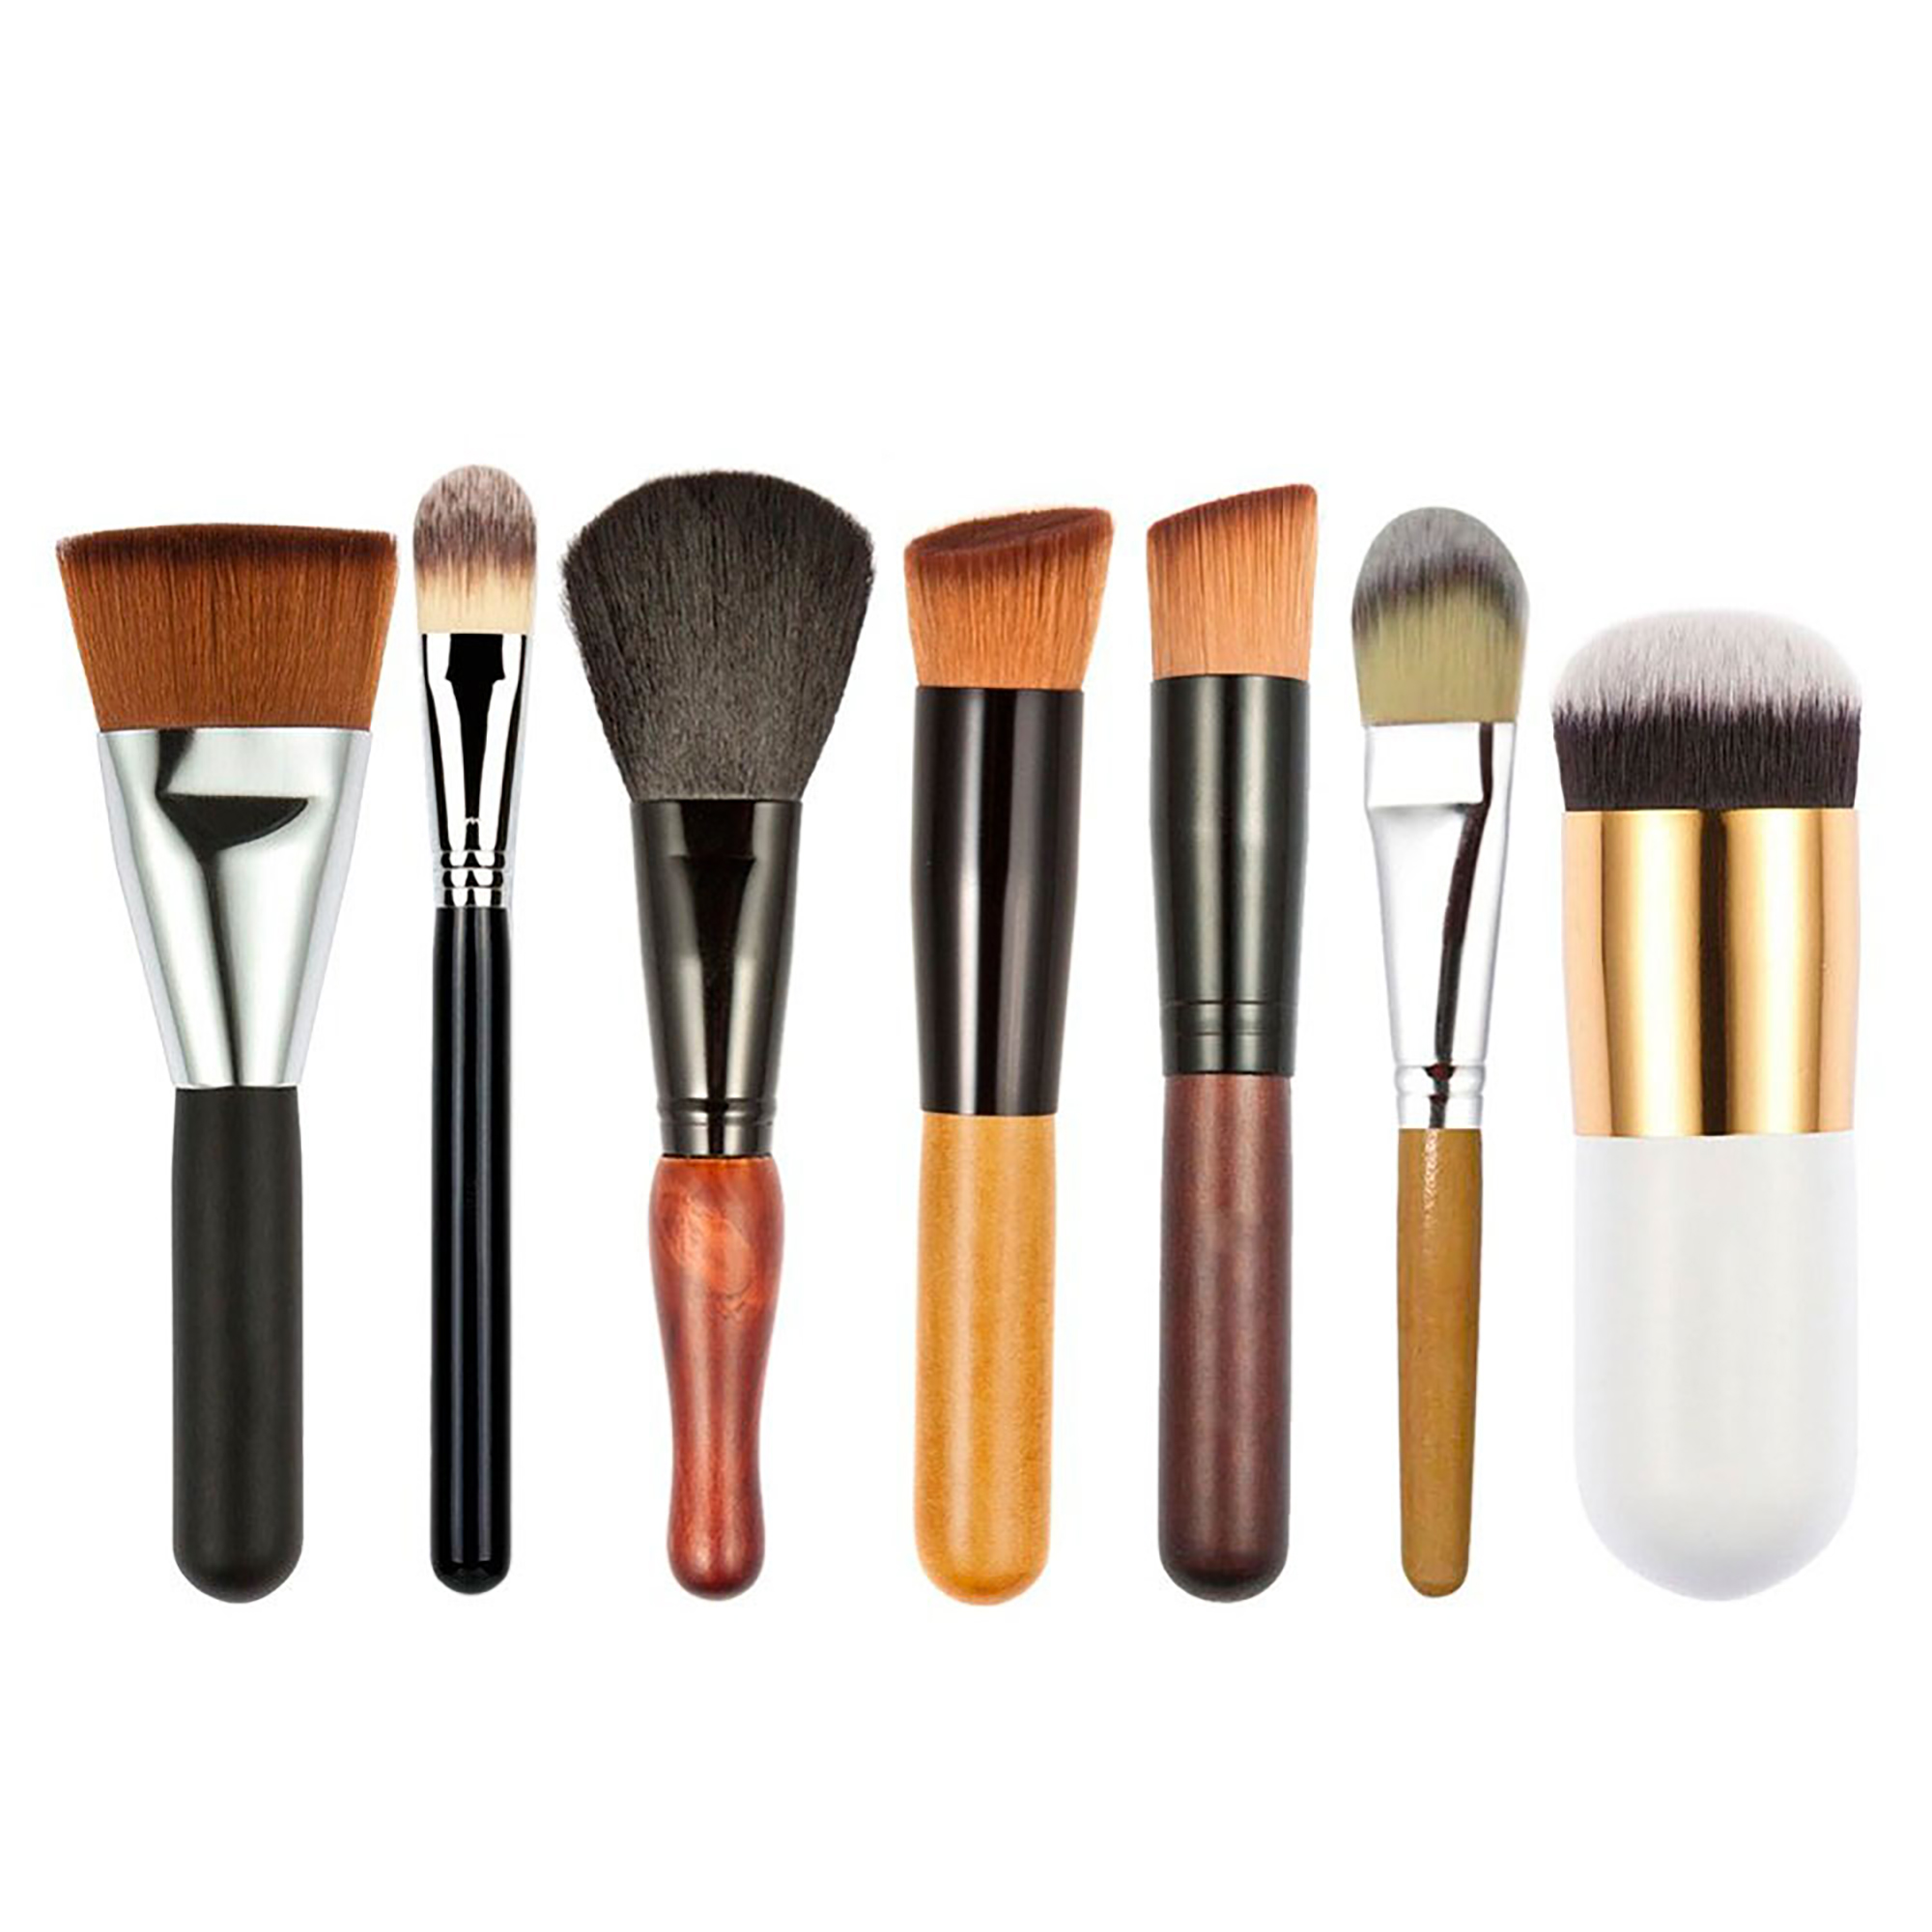 Makeup Brushes Set Kit f743d0482a